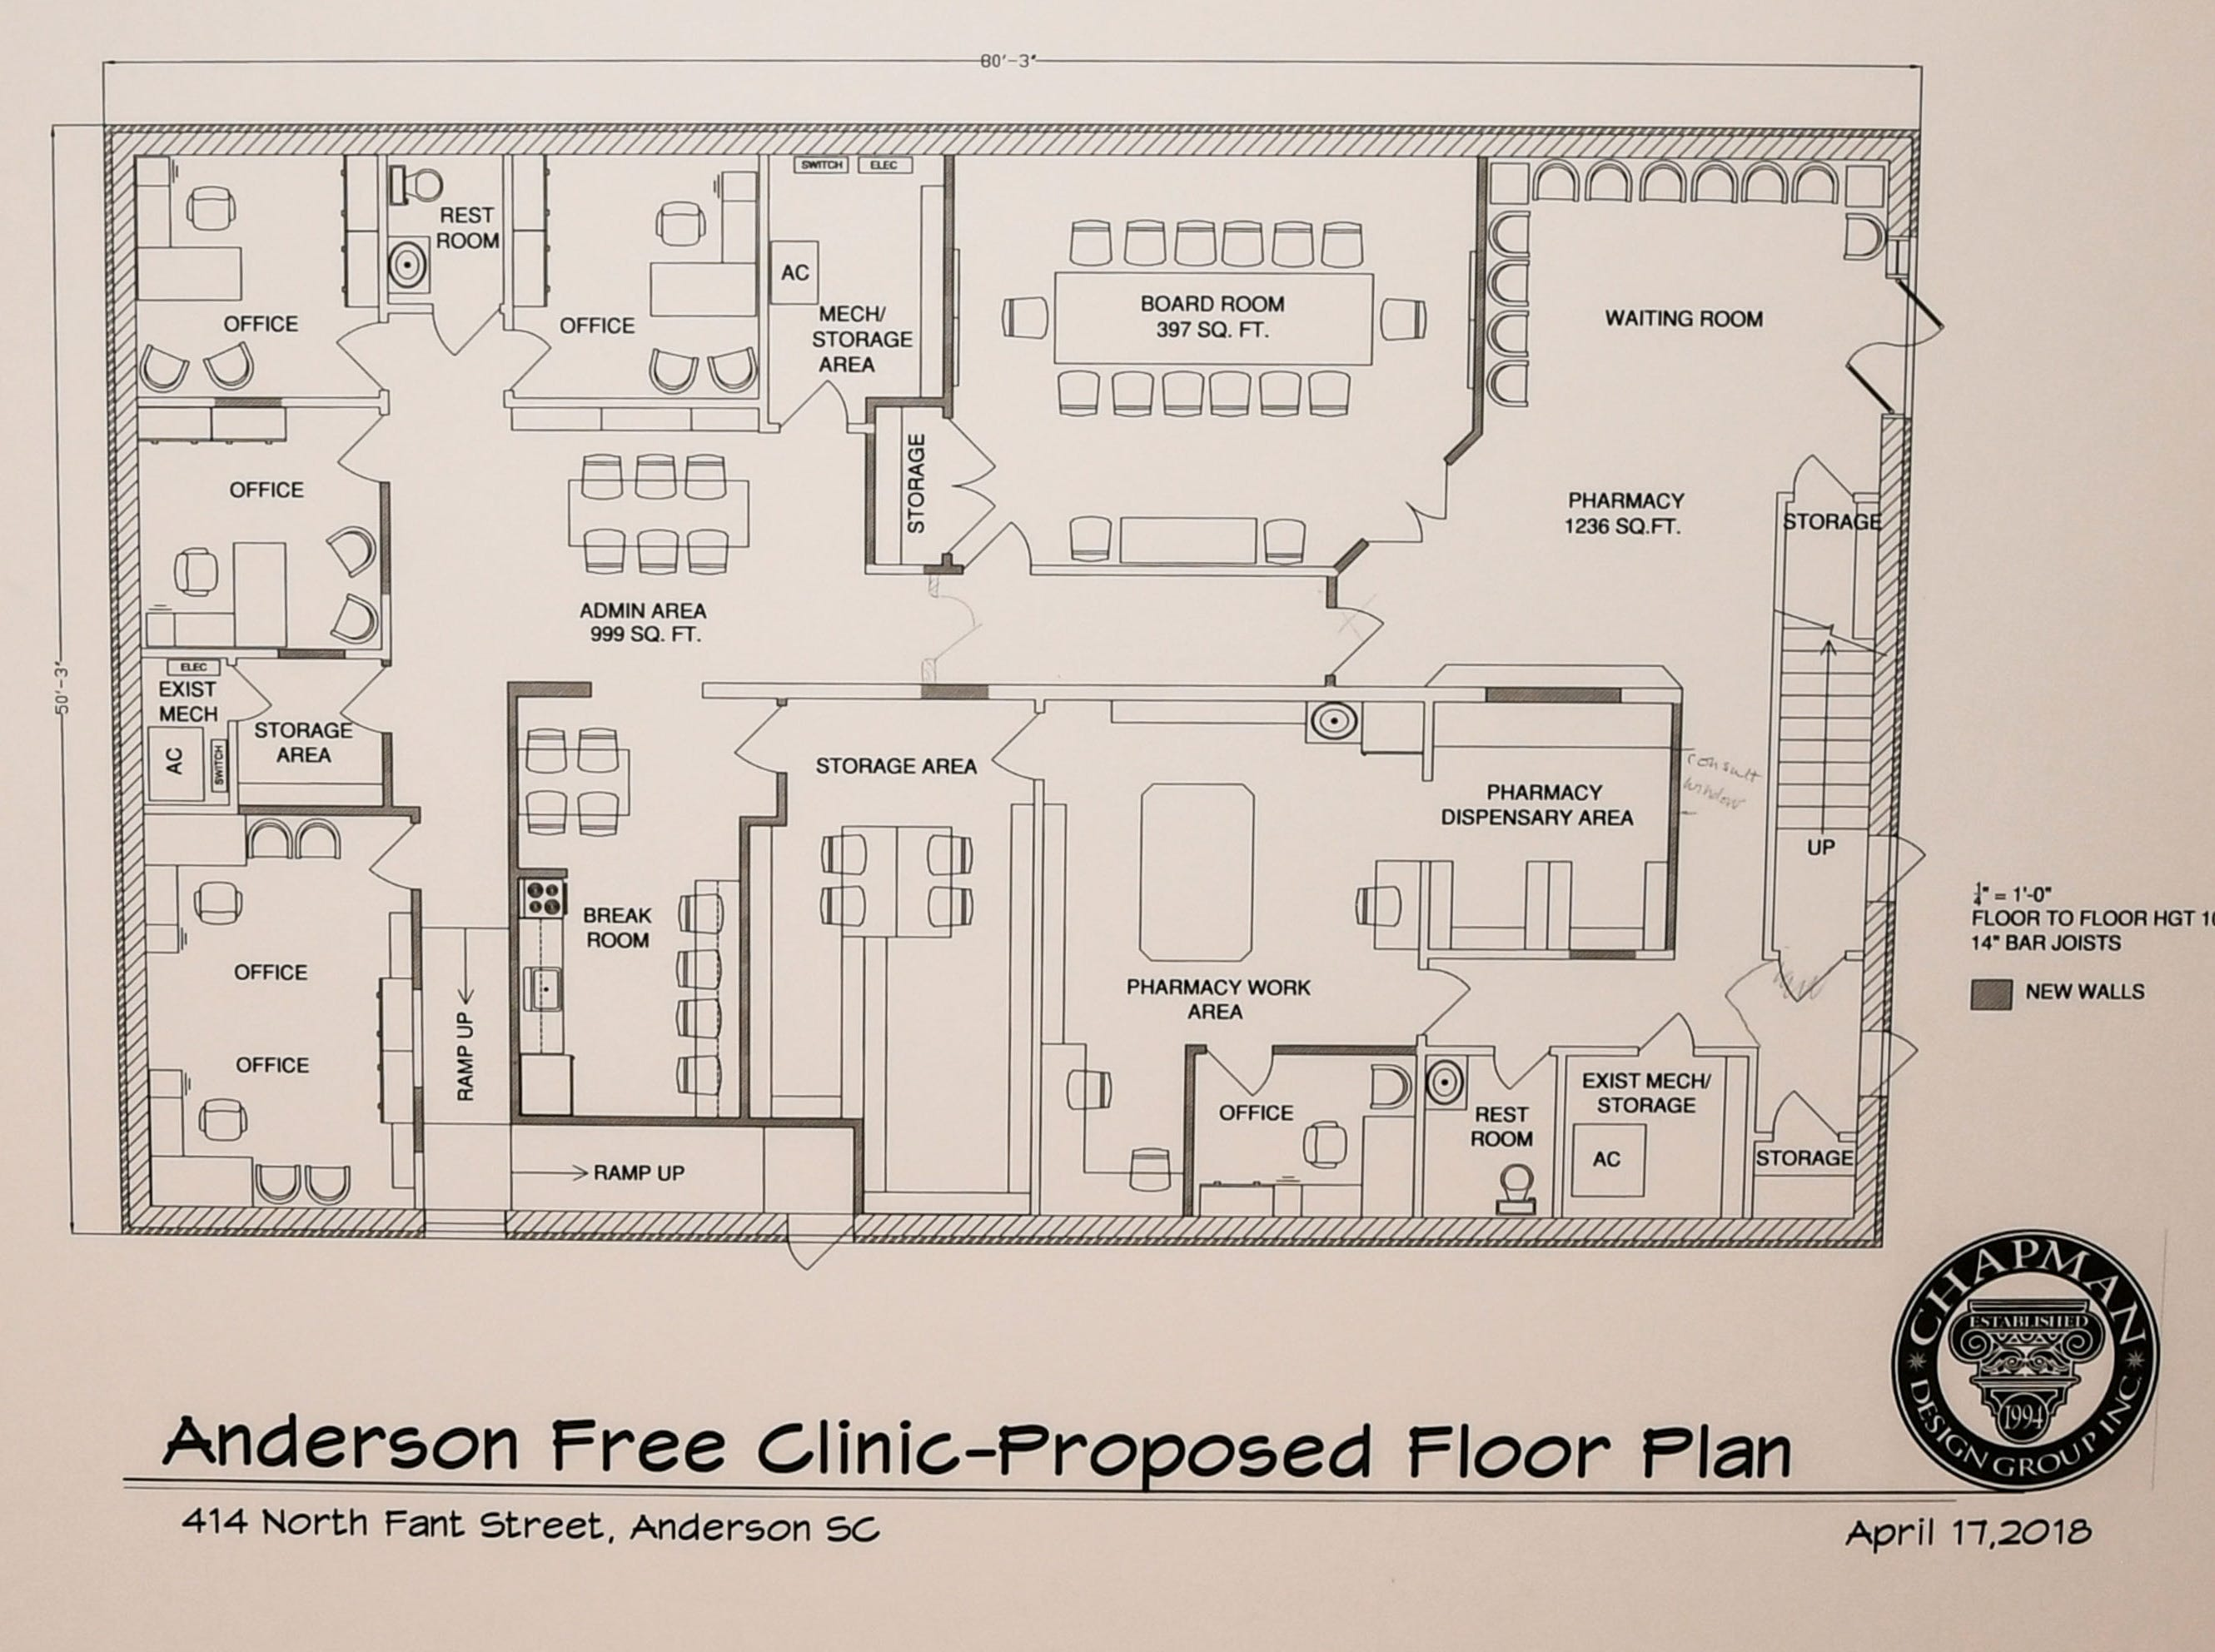 Anderson Free Clinic has a proposed renovation for the first floor to bring the pharmacy closer to the entrance.